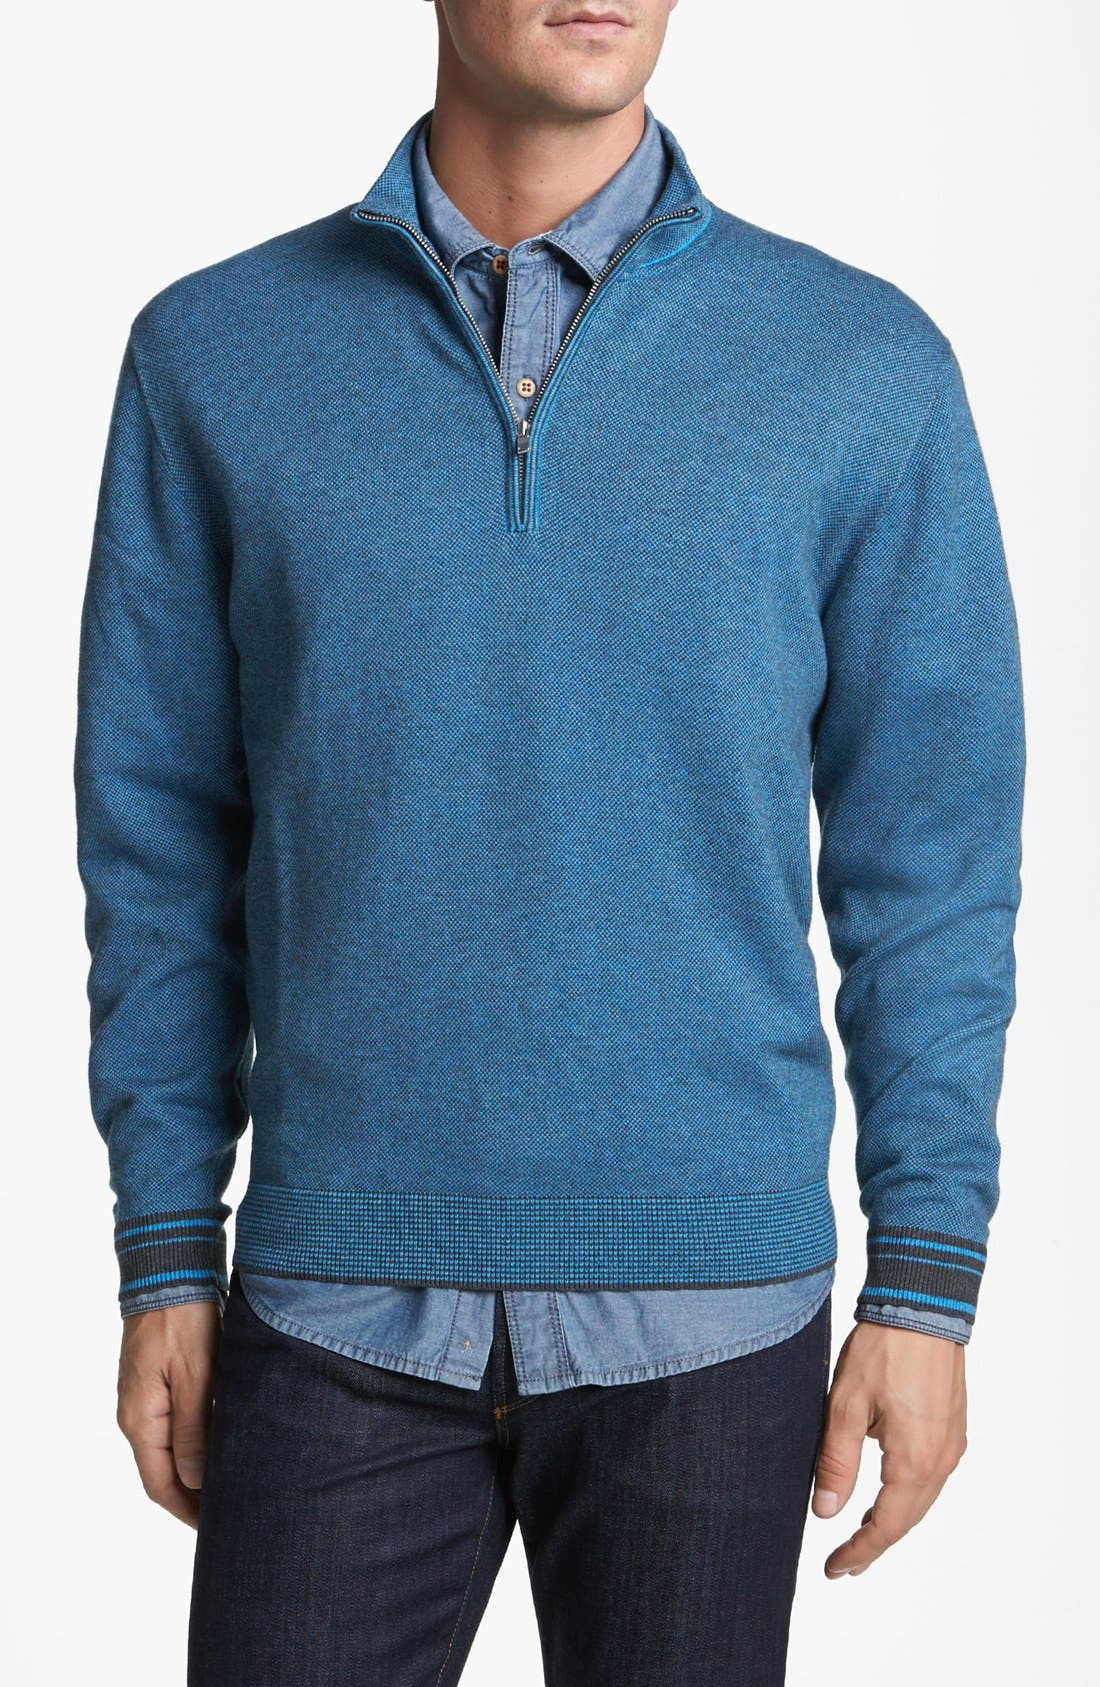 Main Image - Cutter & Buck 'Haven' Half Zip Bird's Eye Sweater (Big & Tall)